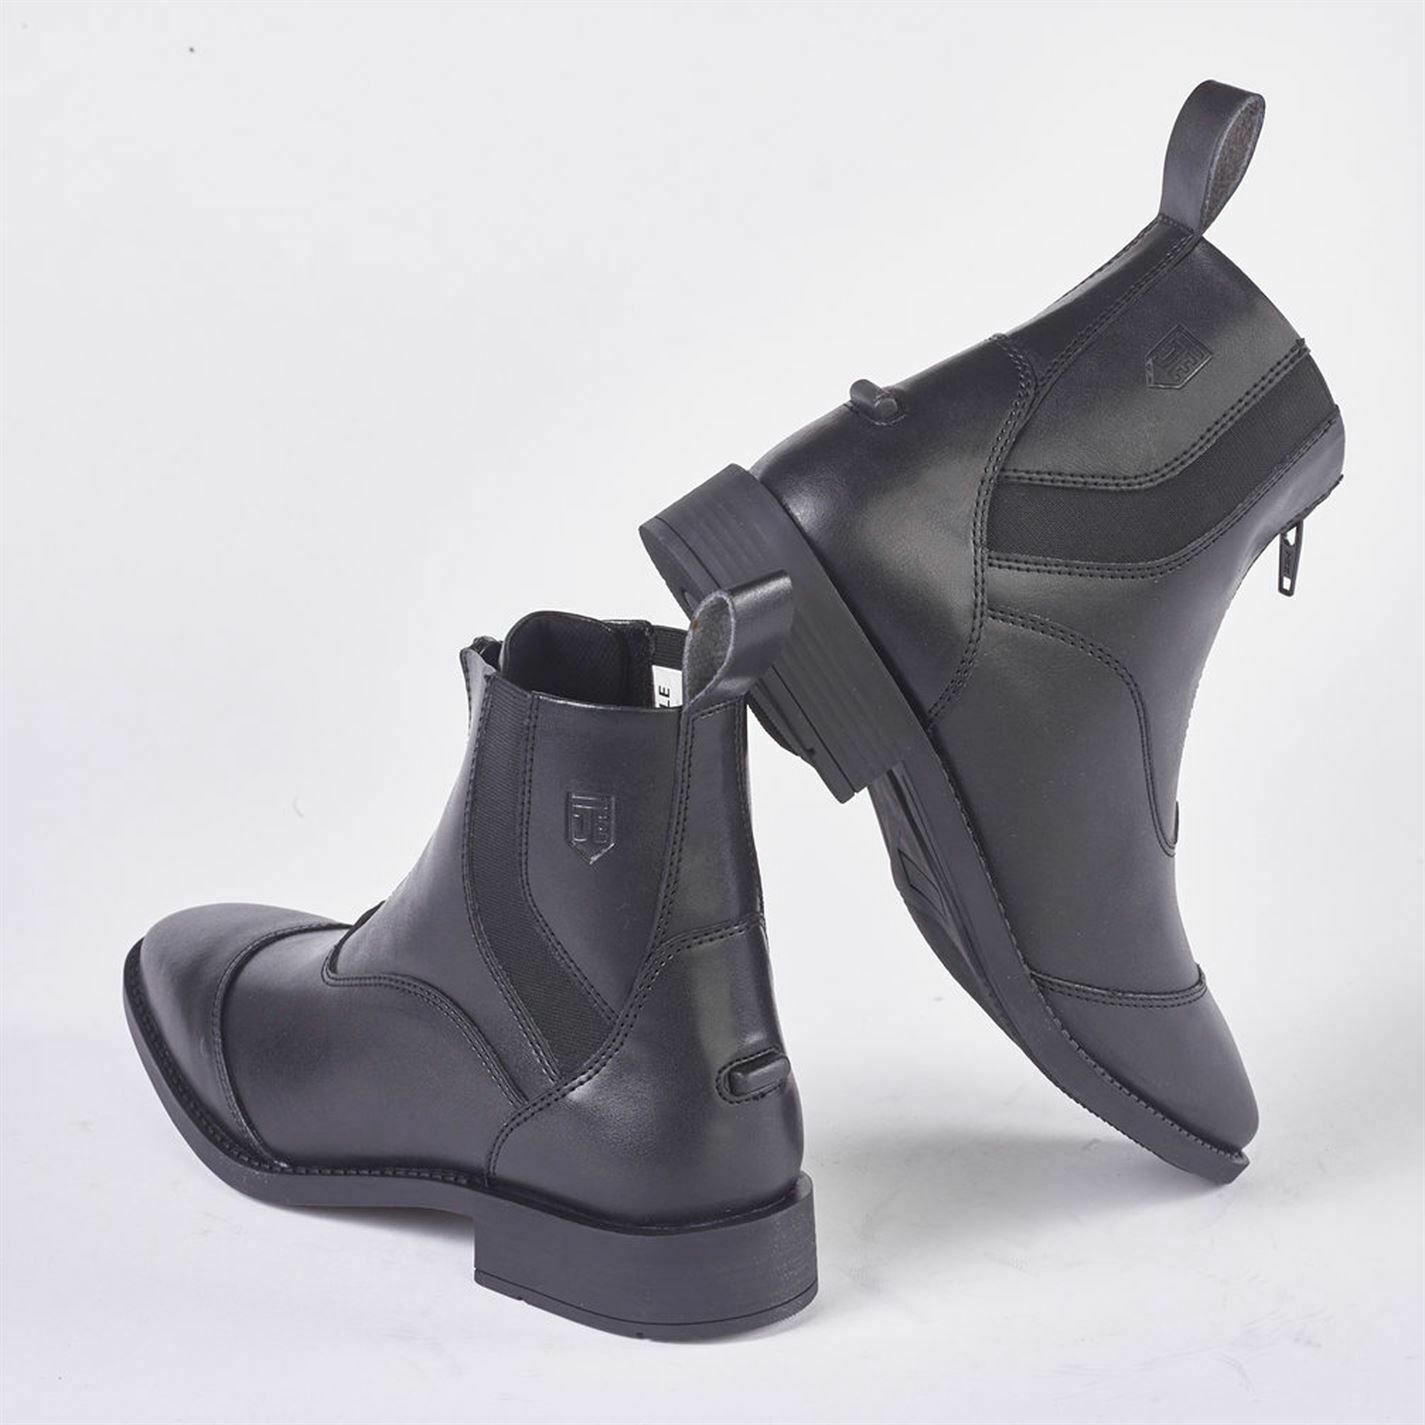 Just Togs Quantum Jodhpur Boots Ladies Zip Pull On